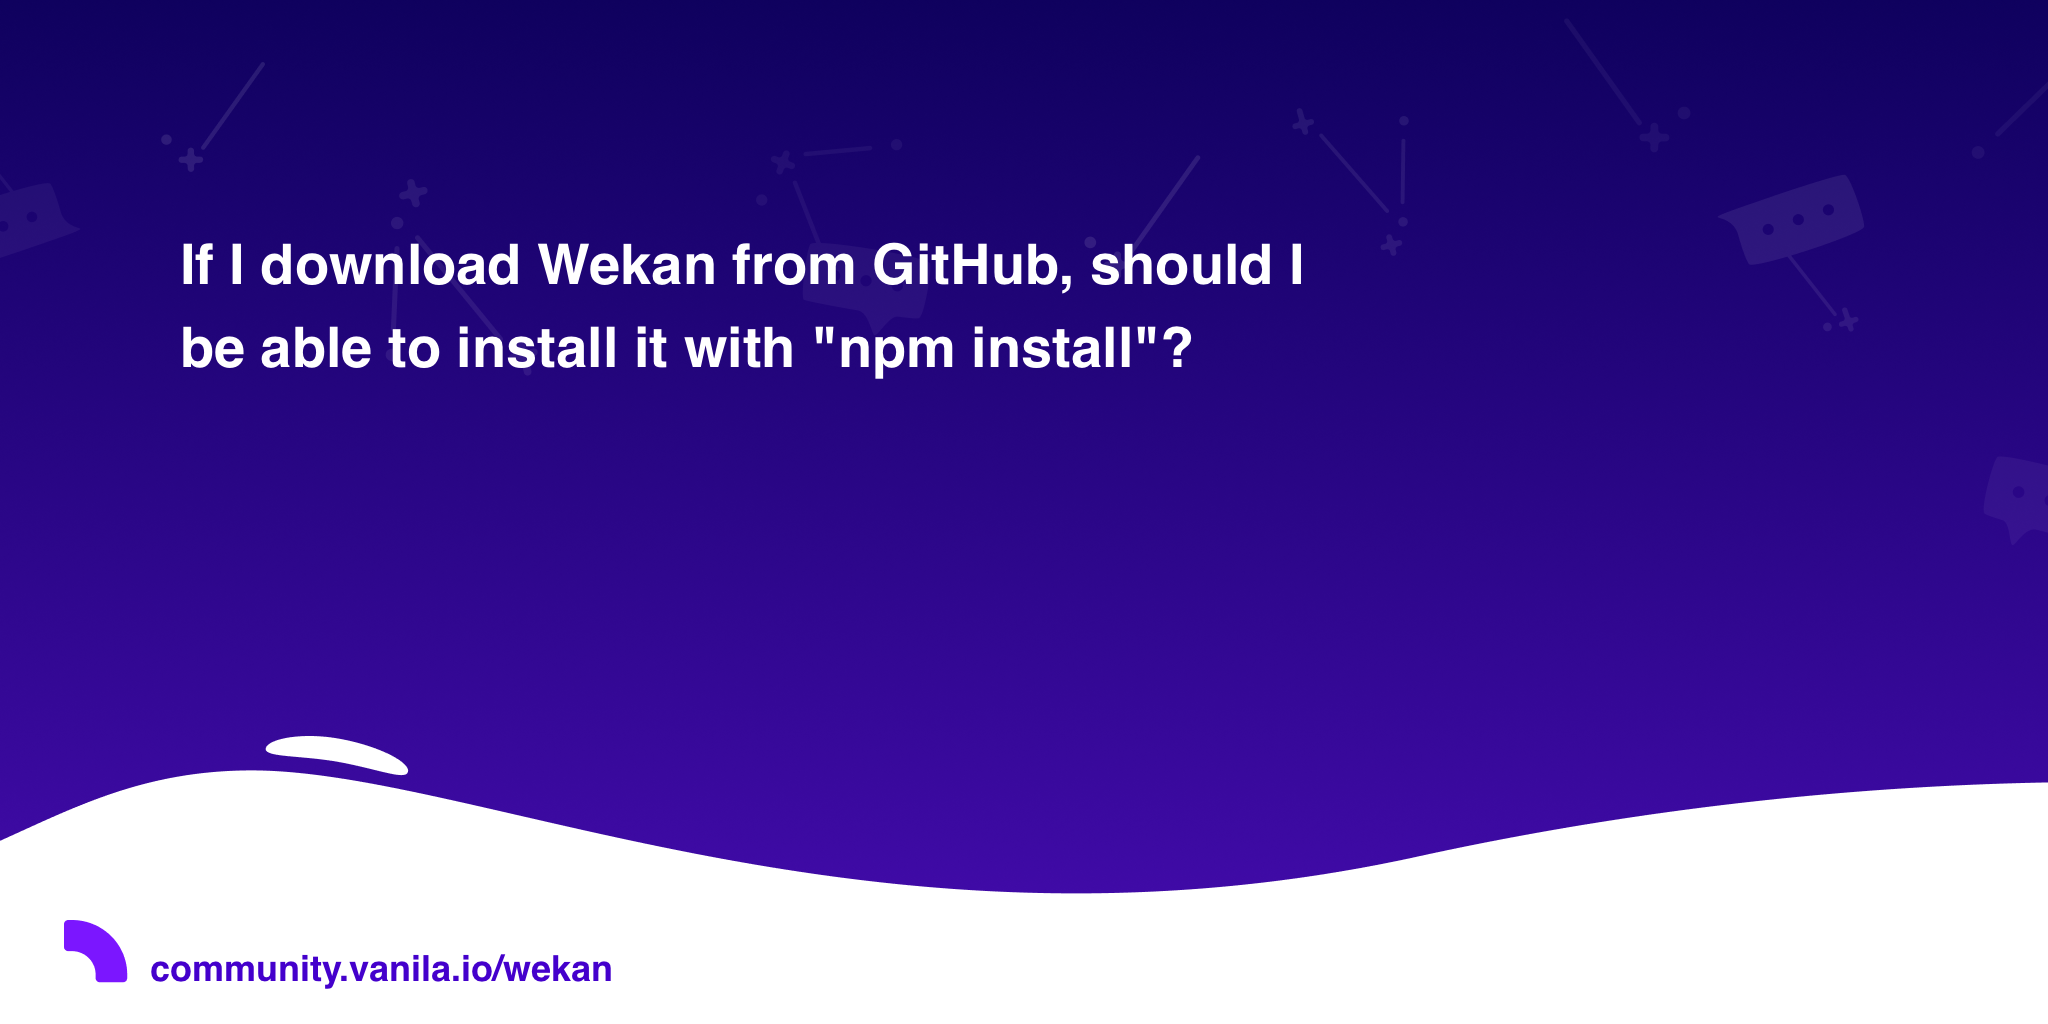 If I download Wekan from GitHub, should I be able to install